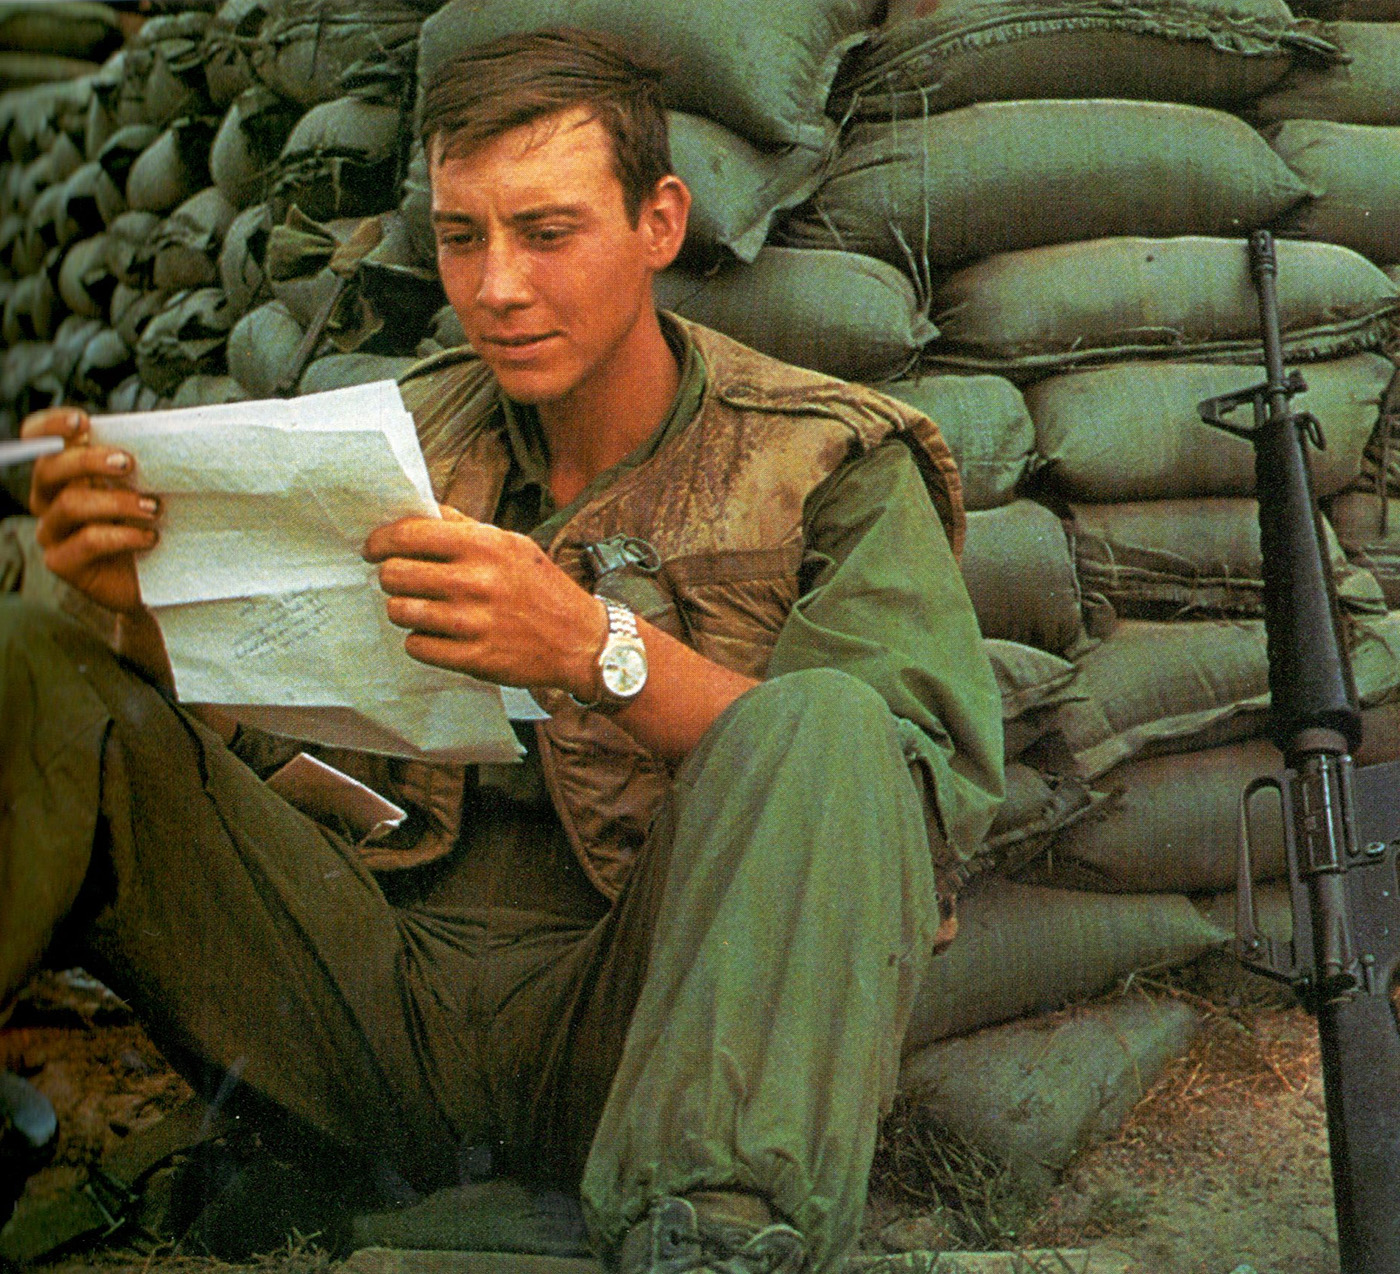 trooper_reading_letter_1.jpg